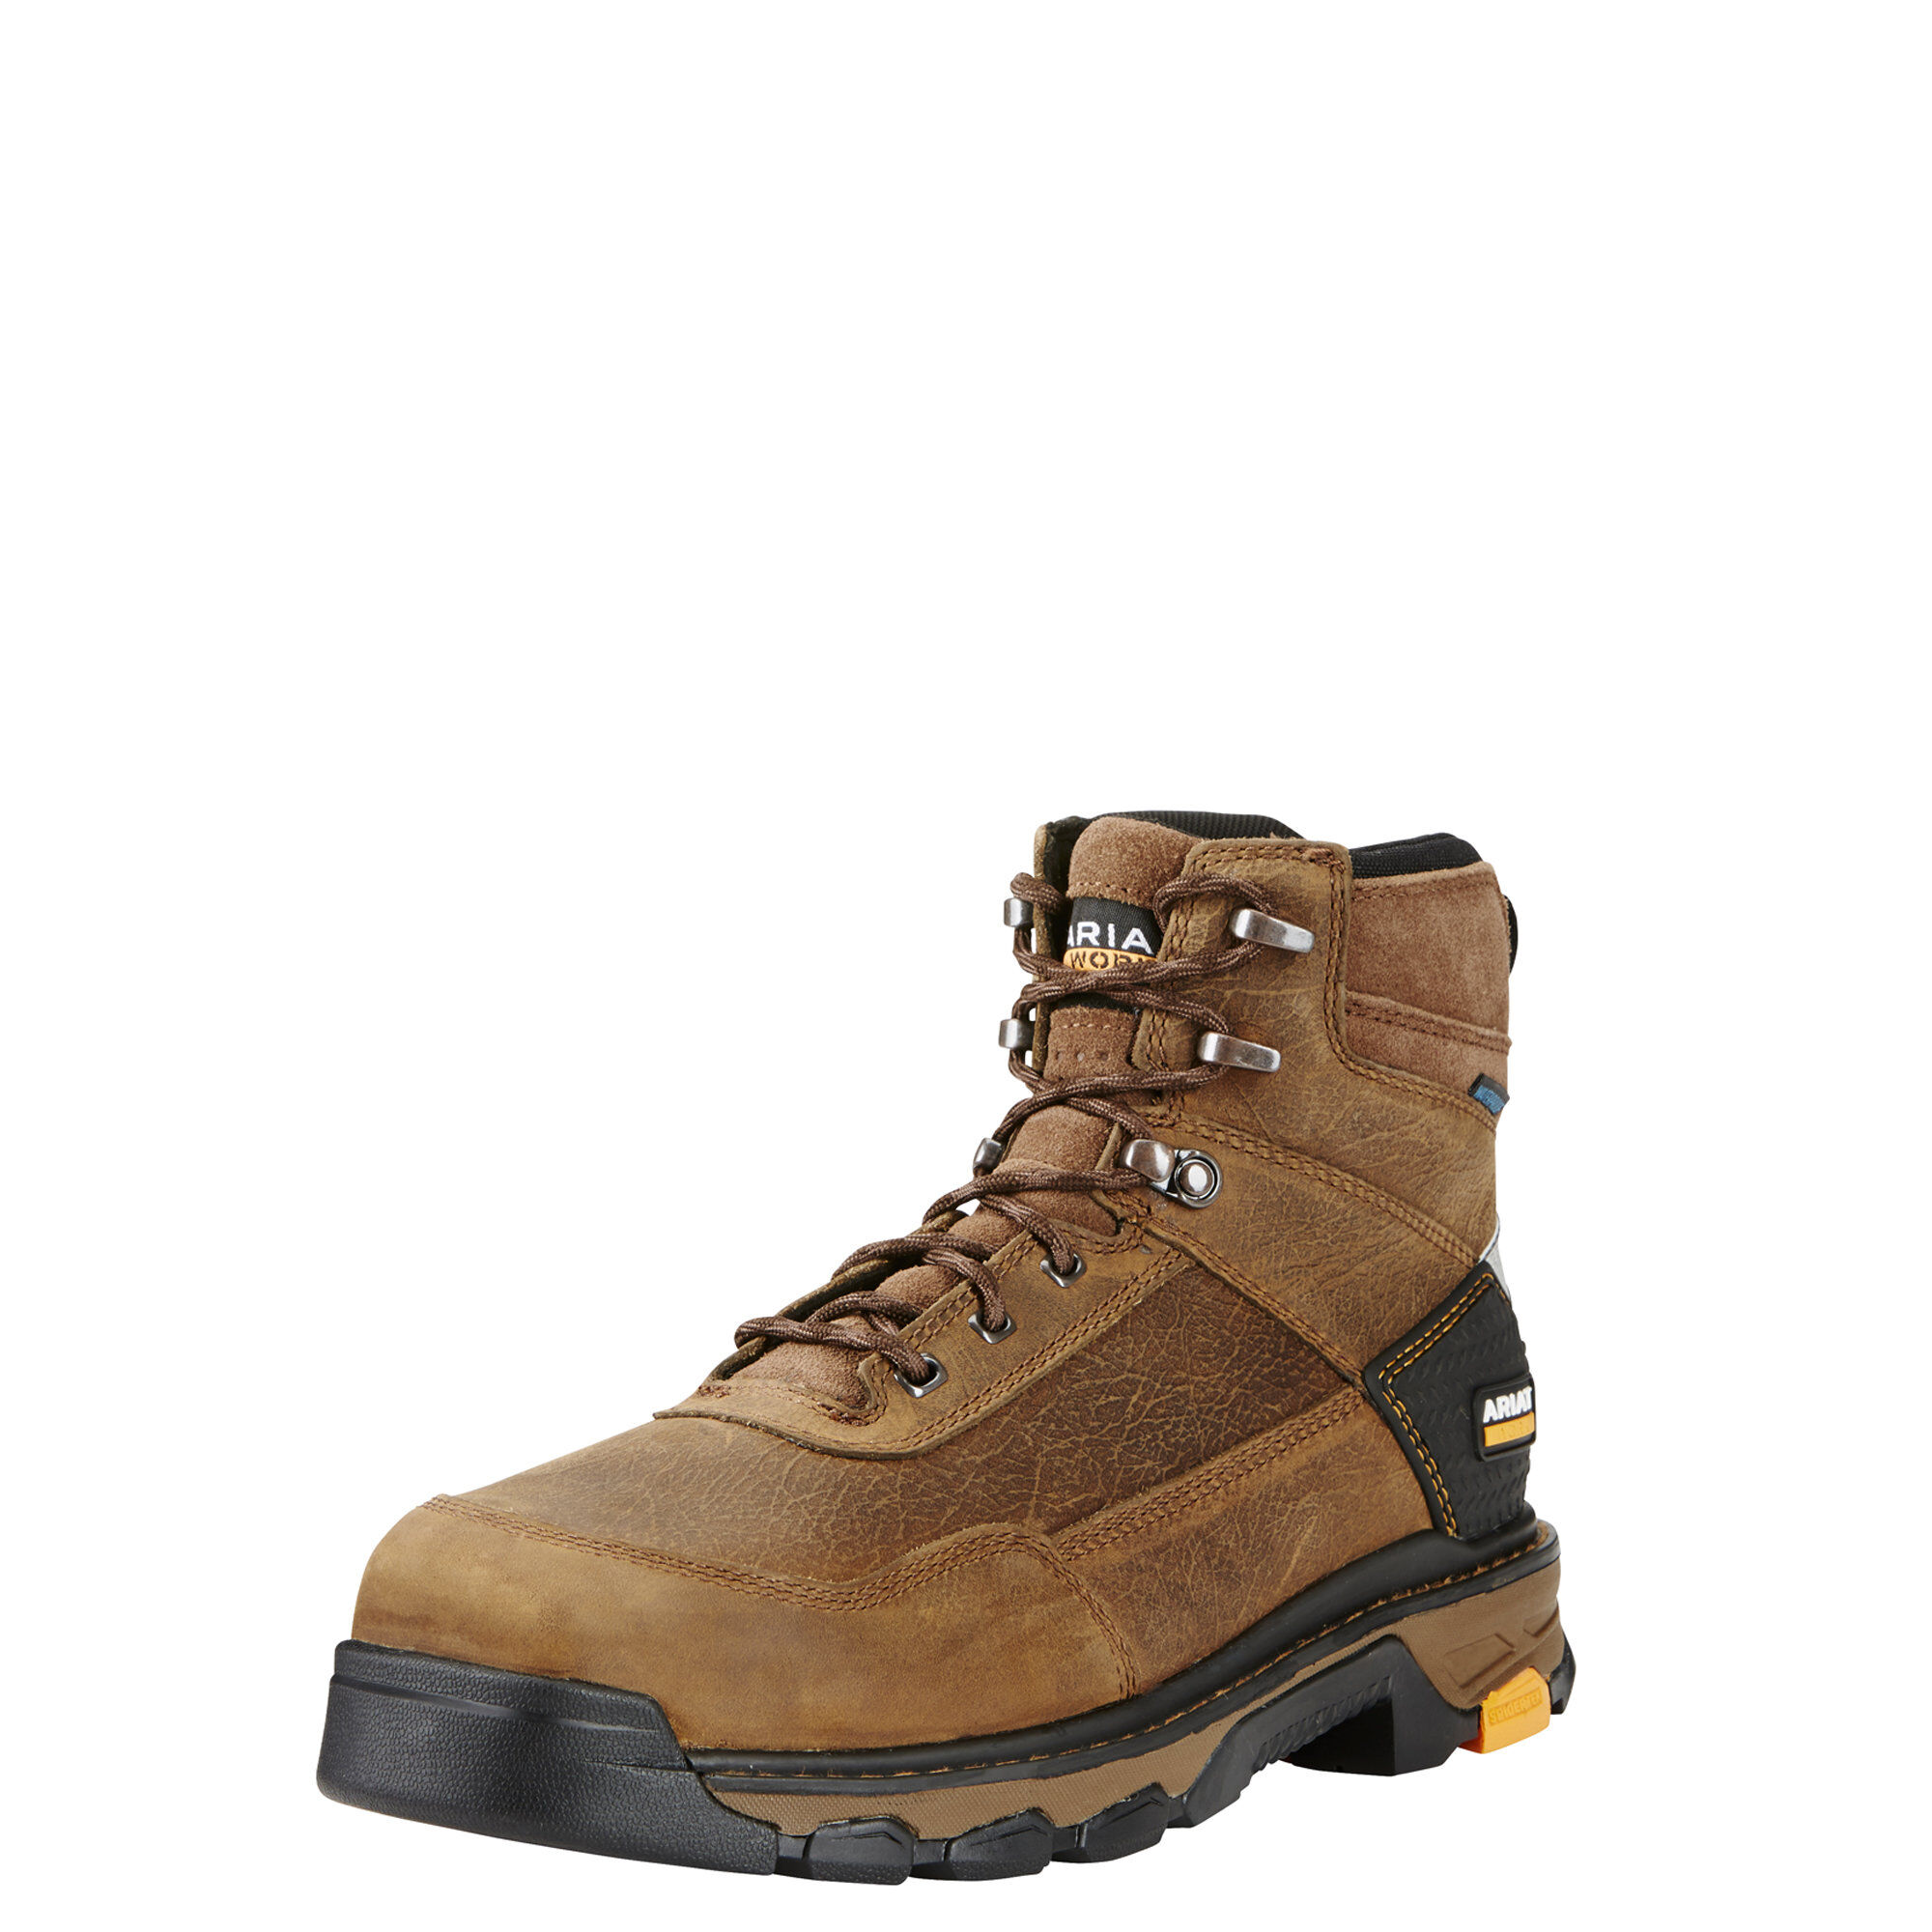 "Intrepid 6"" Waterproof Composite Toe Work Boot"